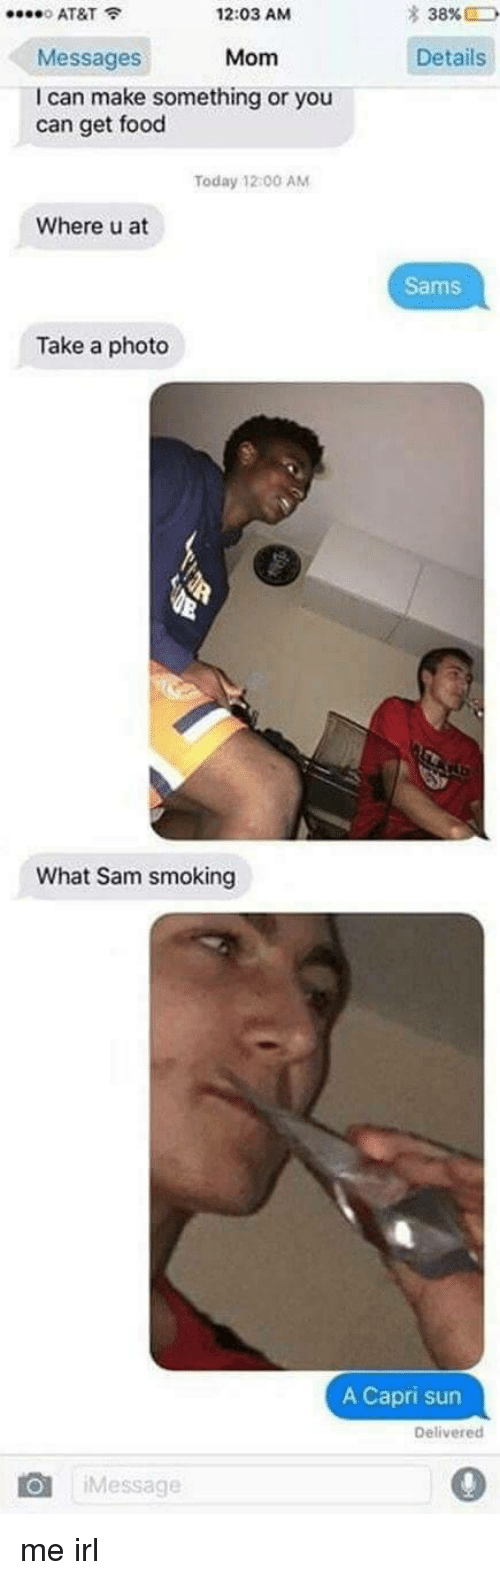 Sams: * 38%  0 AT&T  Messages  I can make something or you  12:03 AM  Mom Details  can get food  Today 12 00 AM  Where u at  Sams  Take a photo  What Sam smoking  A Capri sun  Delivered  Message  0 me irl